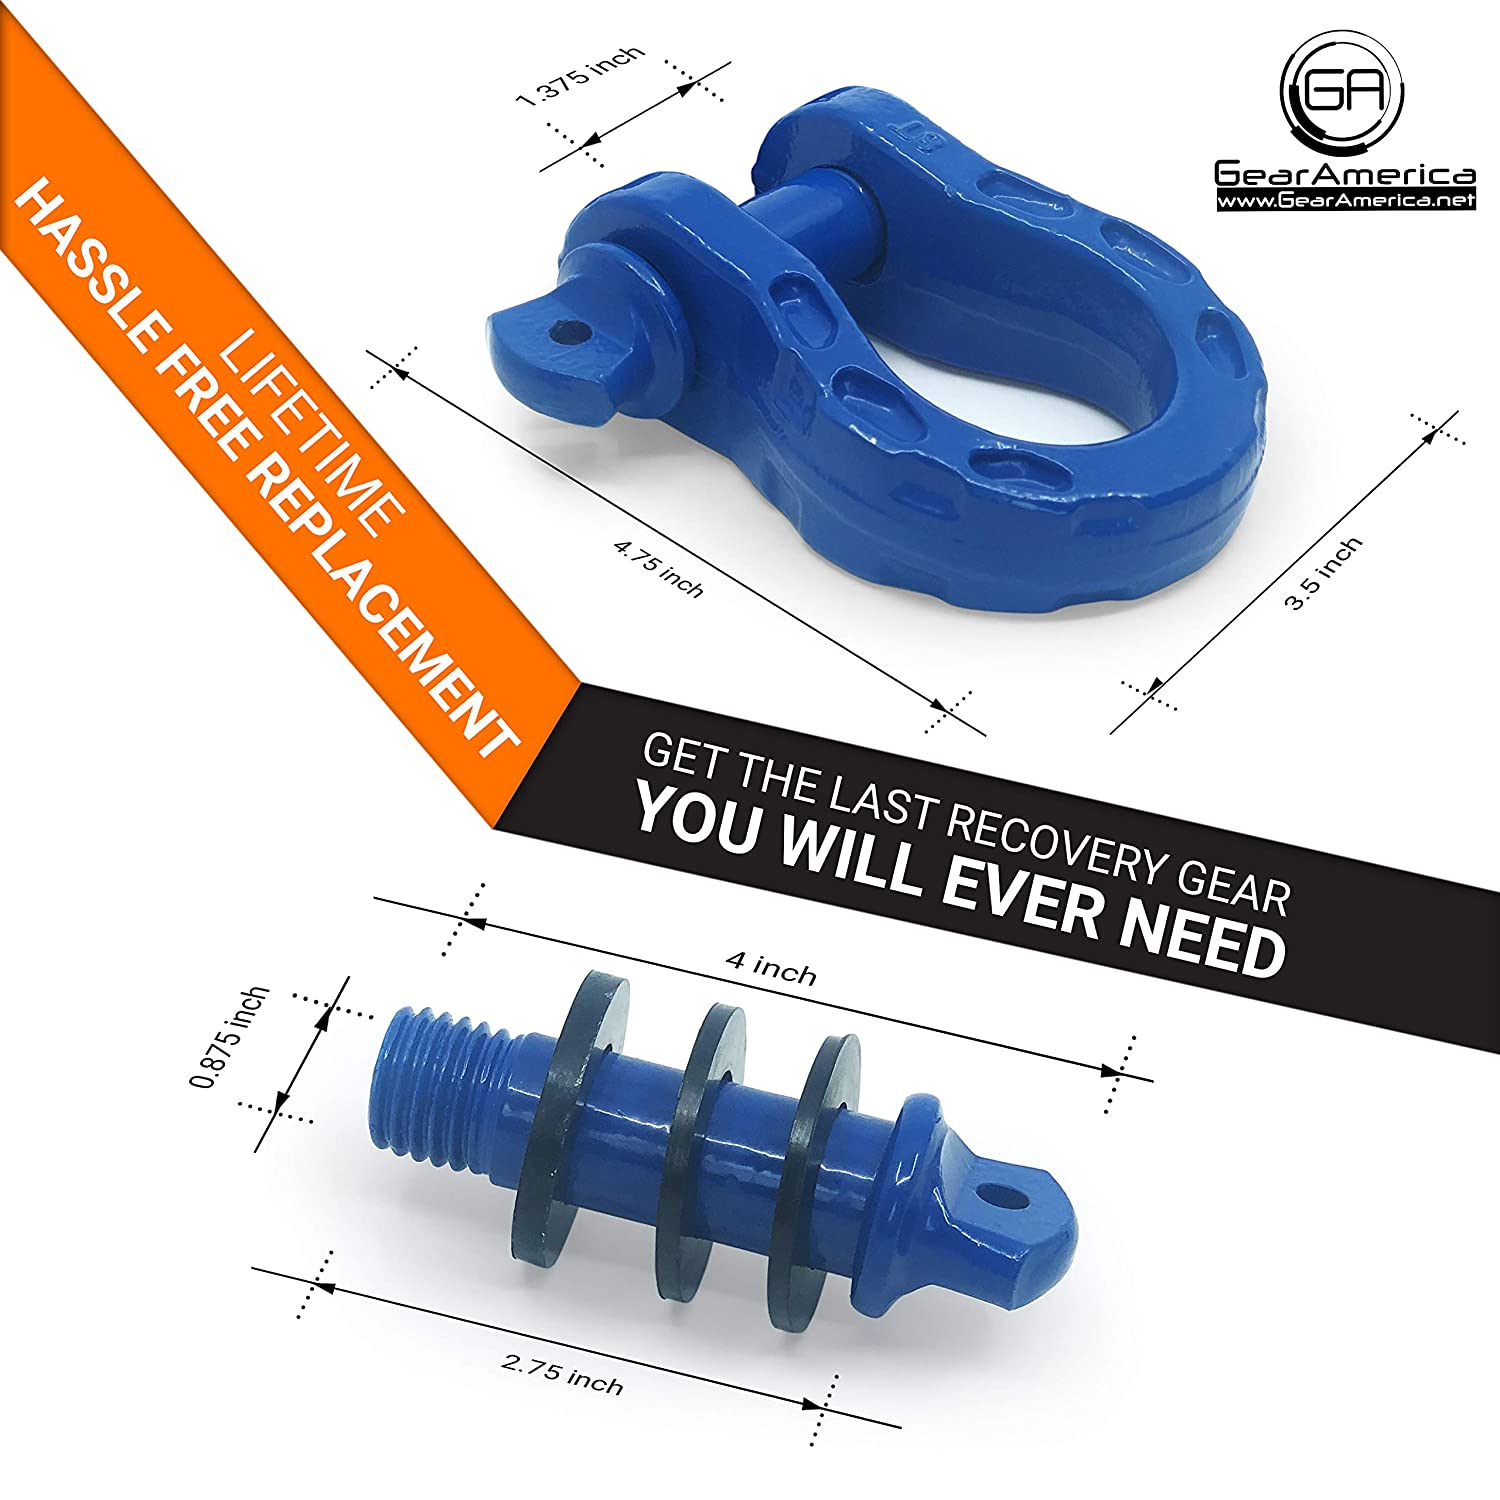 Washers 34 Ton 2PK Tested Strength 3//4 Shackle GearAmerica Mega Duty D Ring Shackles Blue | 68,000 lbs 7//8 Pin Securely Connect Tow Strap or Winch Rope to Jeep for Off-Road 4x4 Recovery